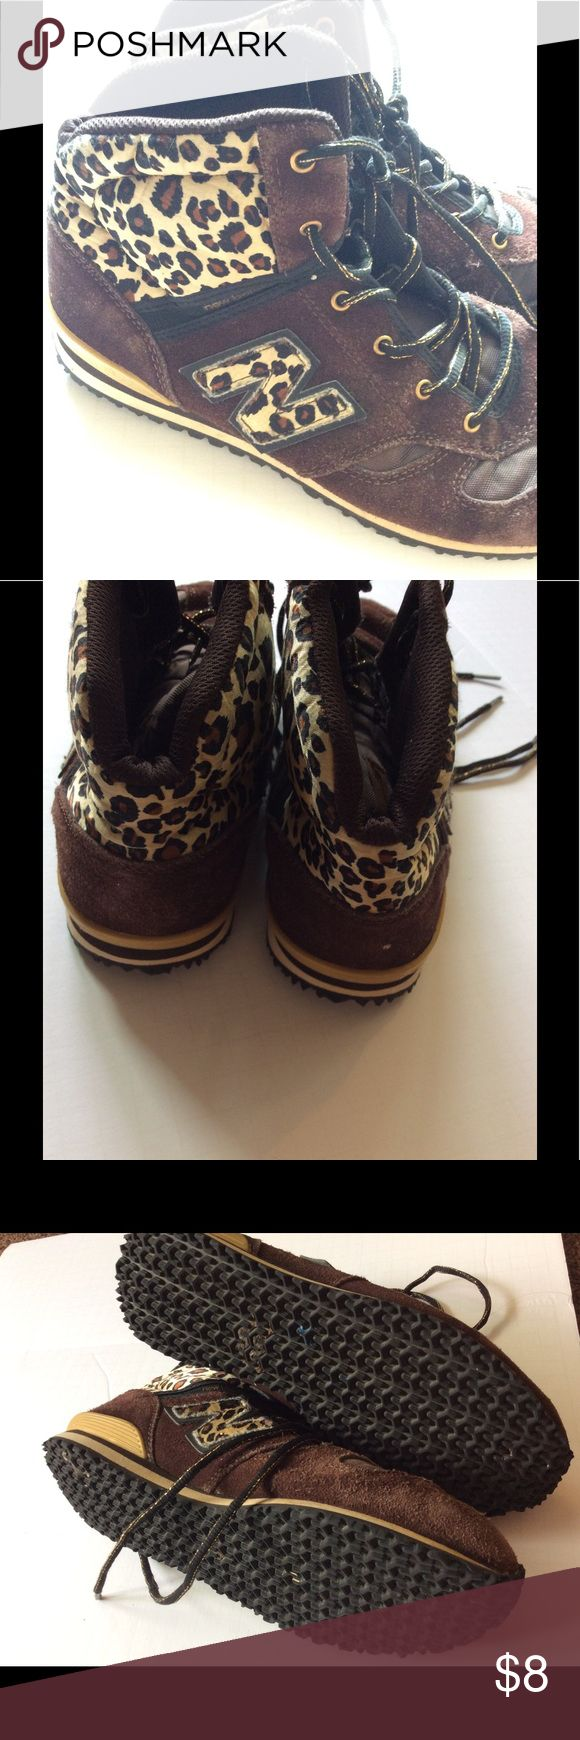 New Balance high top animal print Worn several time, still in great condition! Very cute and comfy, so easy to walk in and even do physical activity. Comment below to save on shipping! New Balance Shoes Sneakers